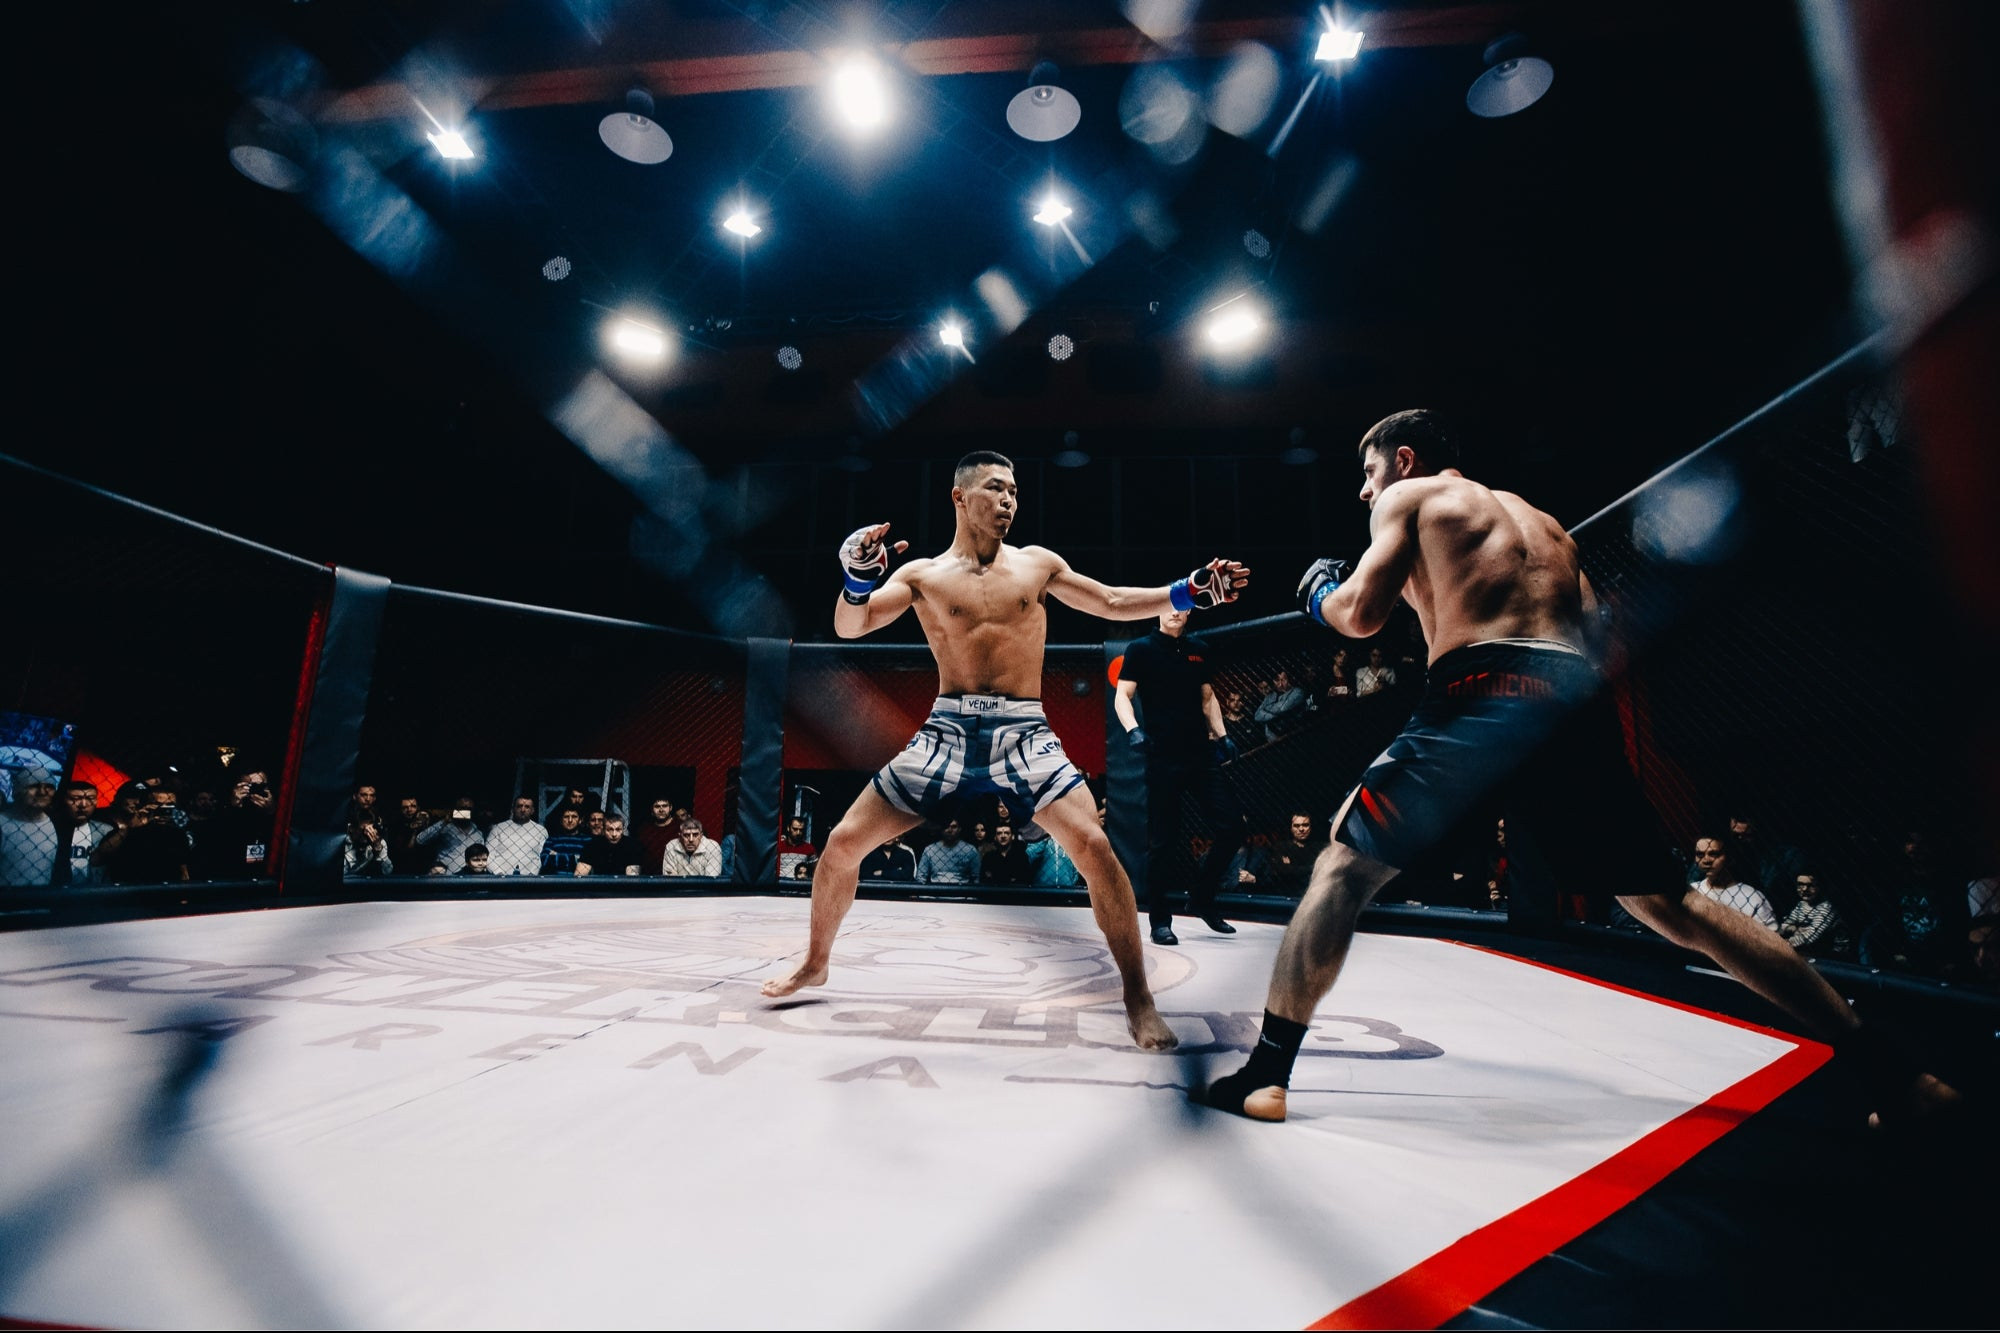 What to Learn From UFC's and Boxing's Marketing Strategies